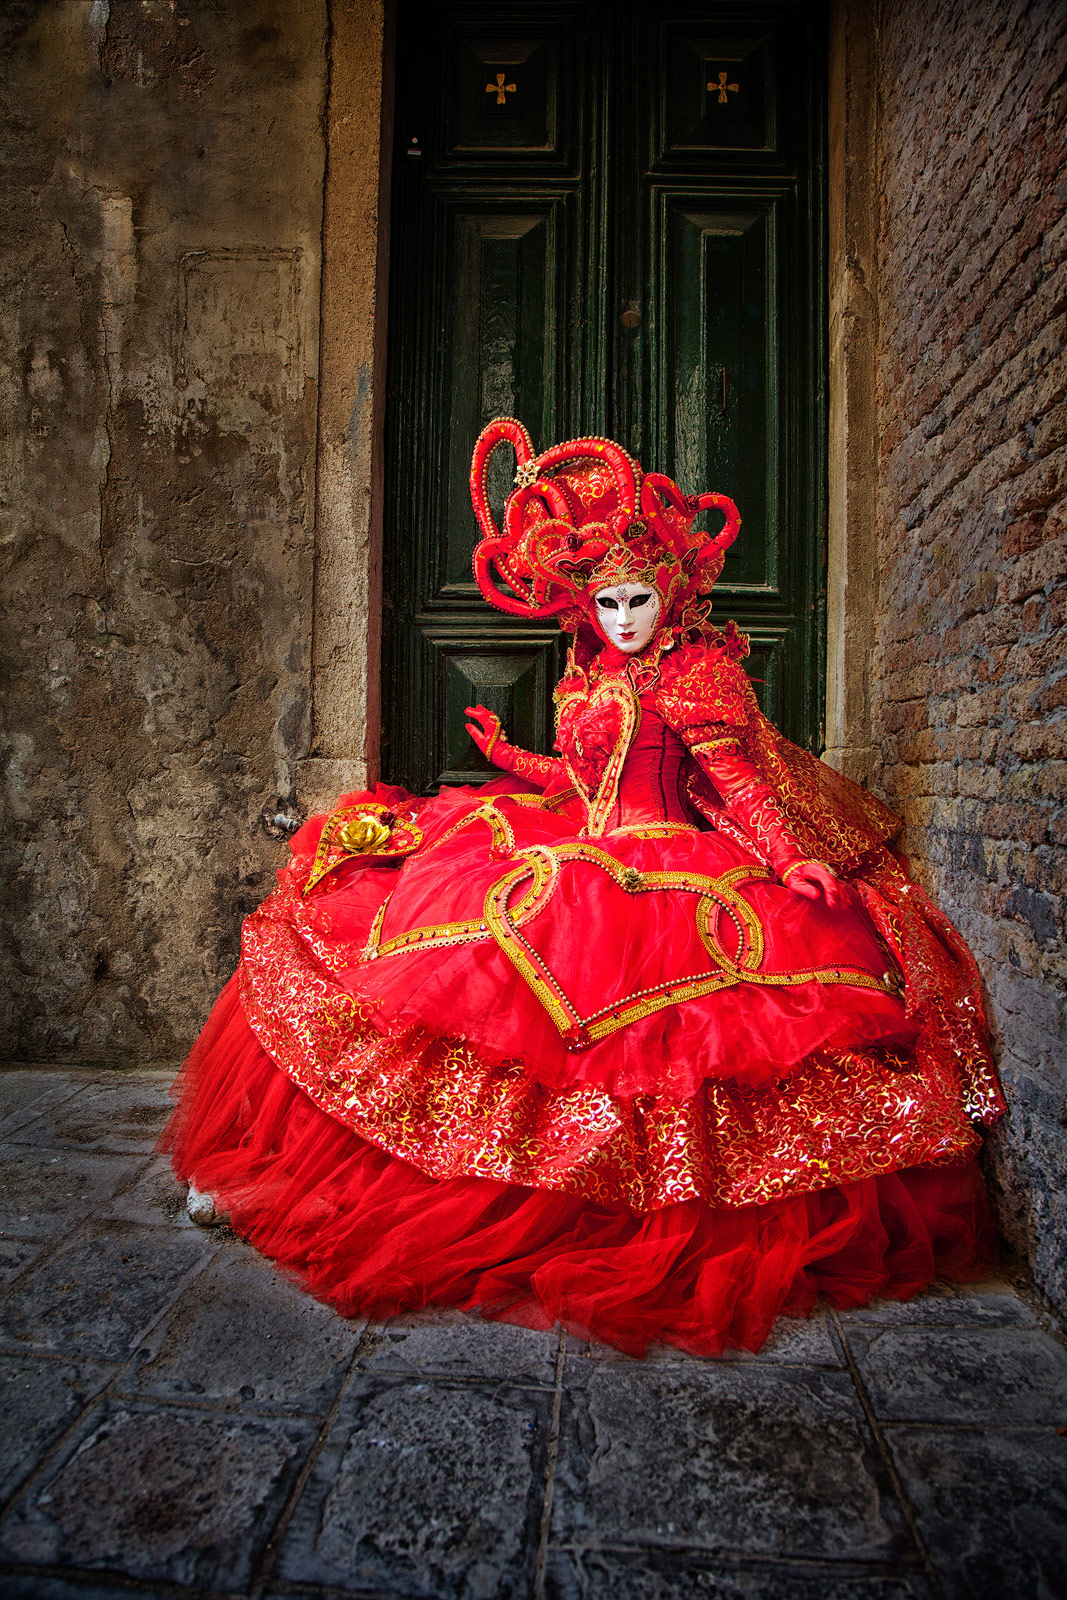 carnival, celebration, colorful, costume, door, doorway, europe, italy, mask, myriam, myriam melhem, party, red, venice, vertical, photo